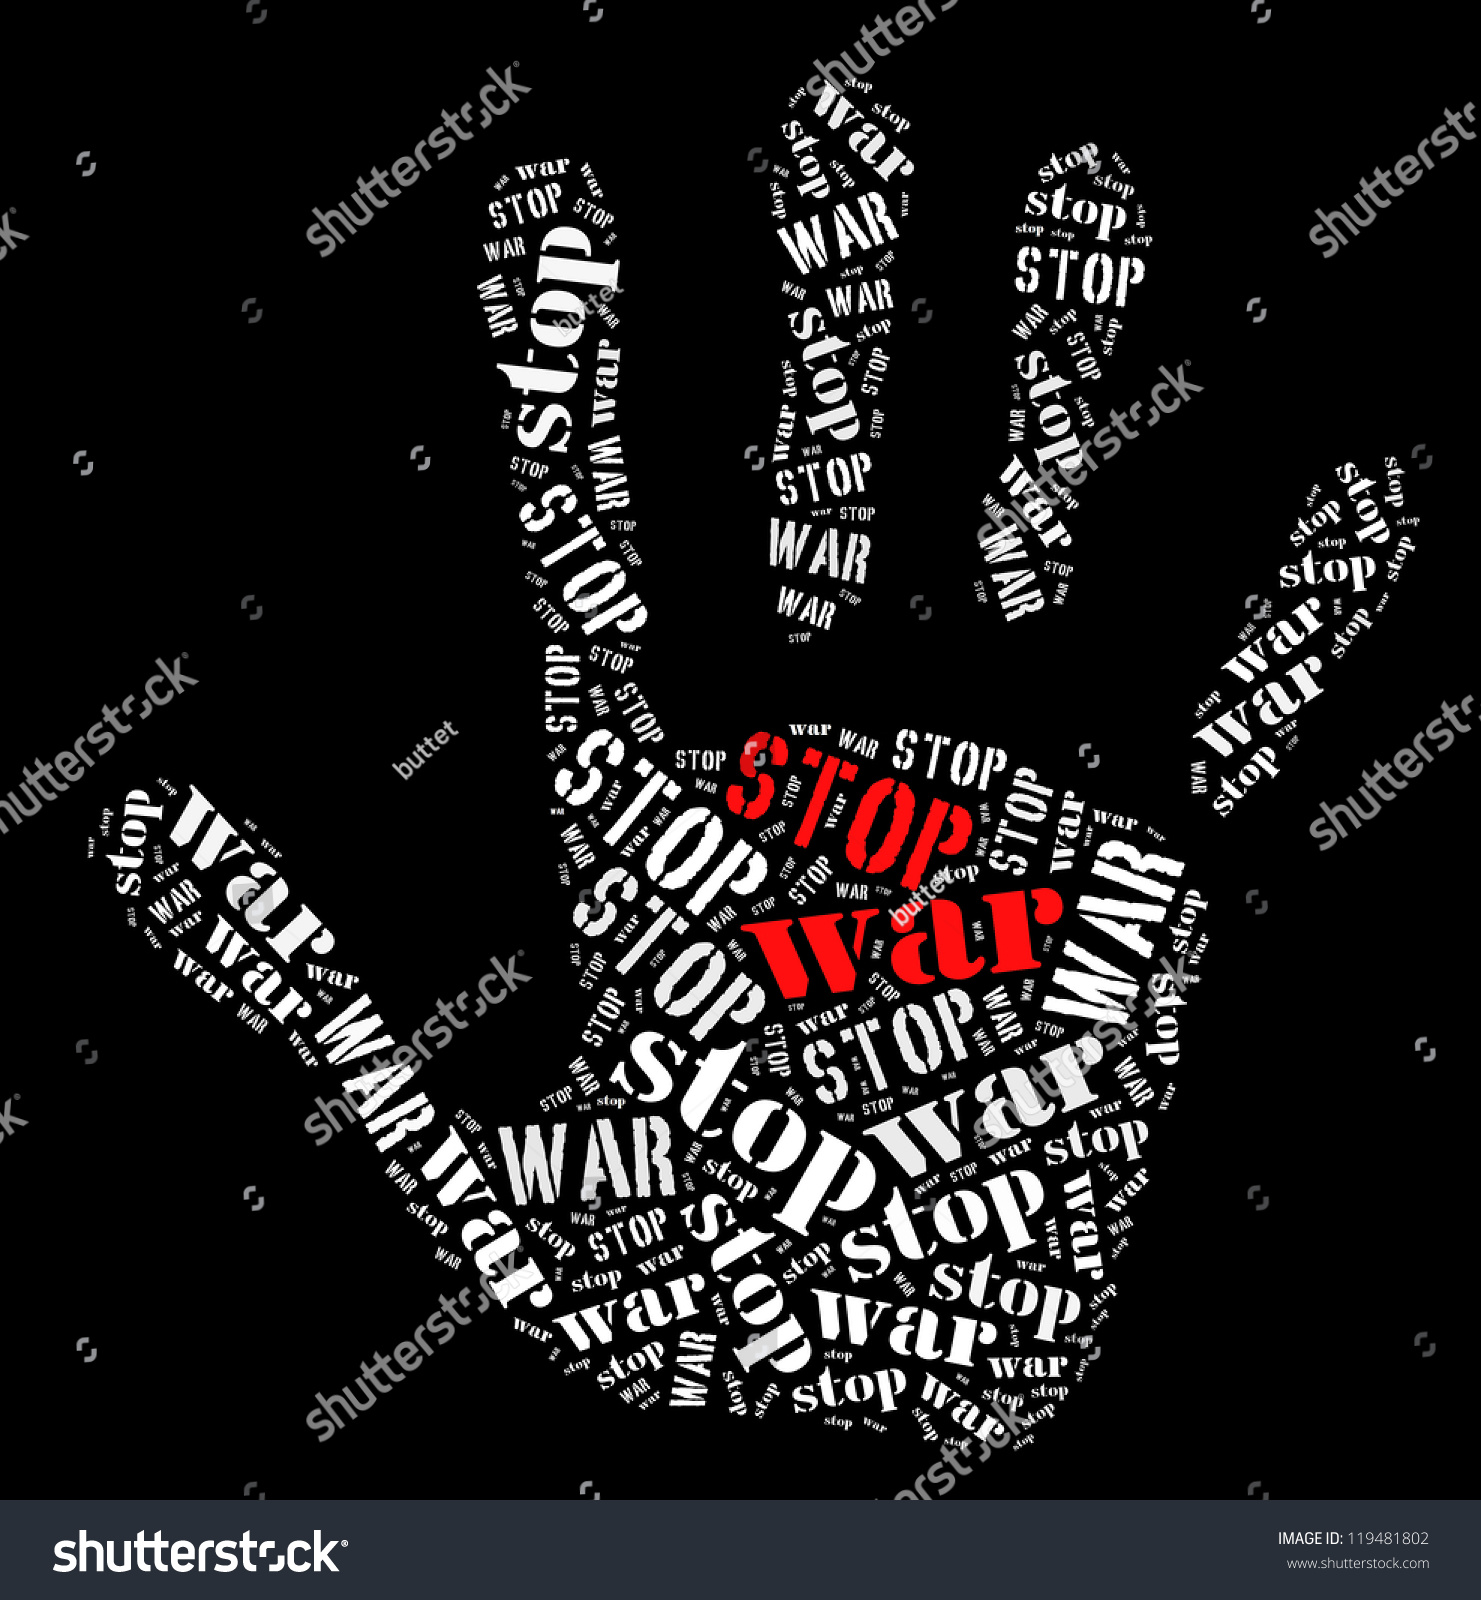 ¡¡¡ STOP WAR - ROS !!! - Canciones de guerra (songs of peace) Stock-photo-stop-war-word-collage-in-black-background-119481802